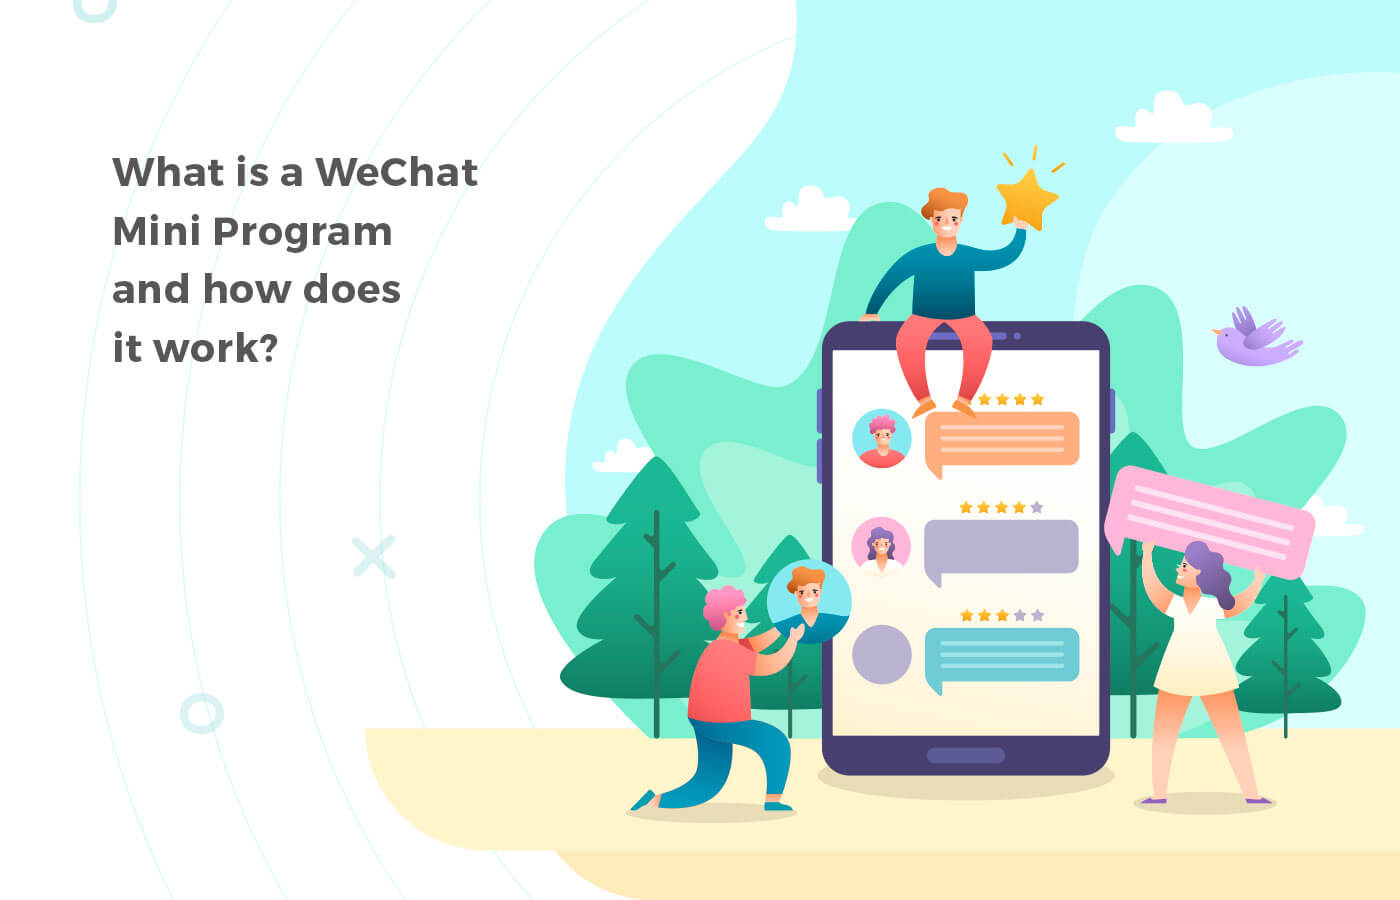 What is a WeChat Mini Program and how does it work